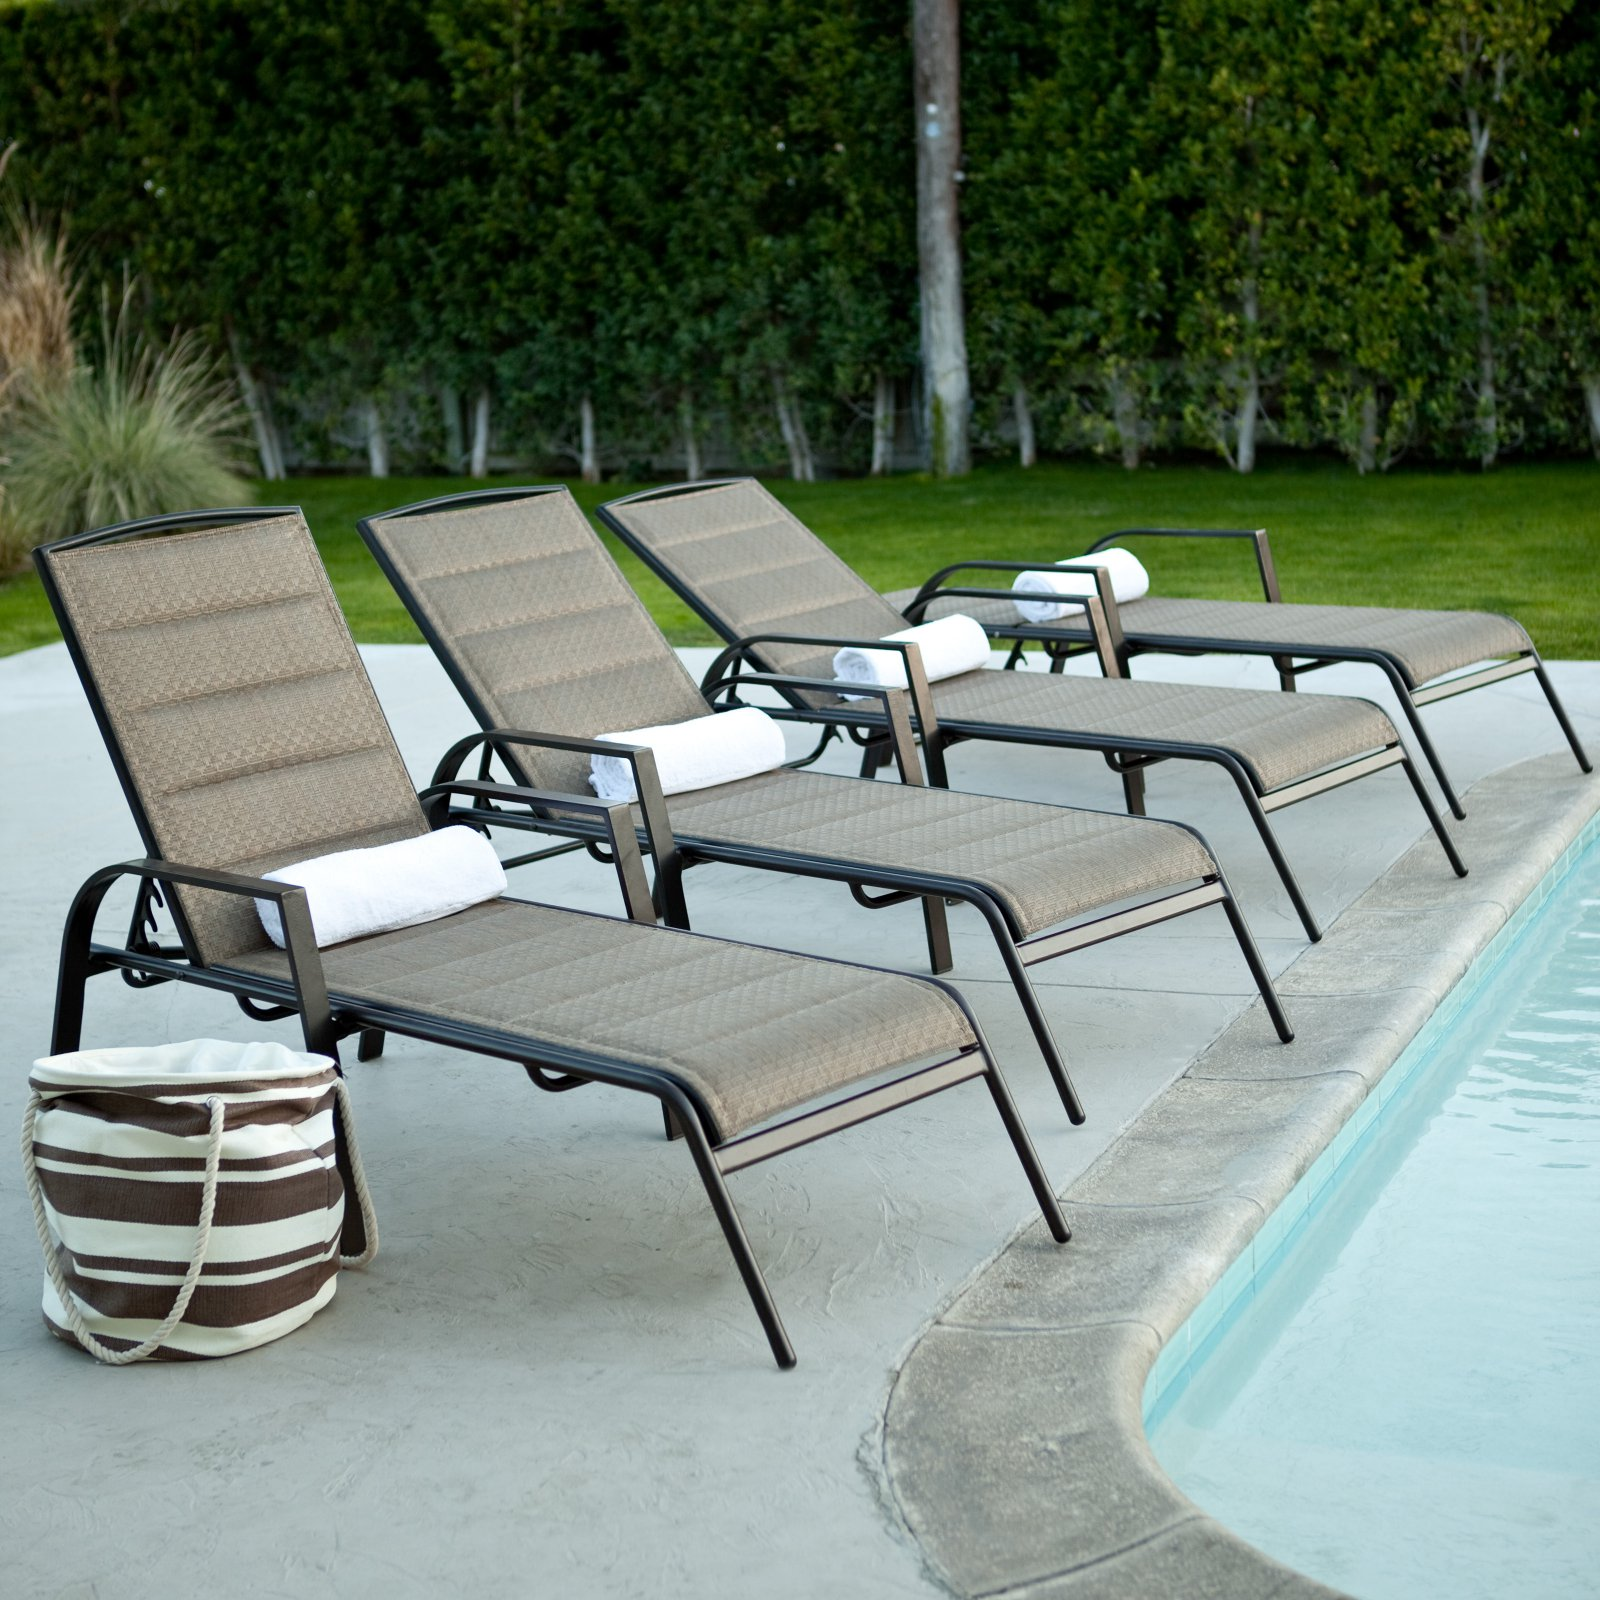 Coral Coast Del Rey Padded Sling Chaise Lounges - Set of 2